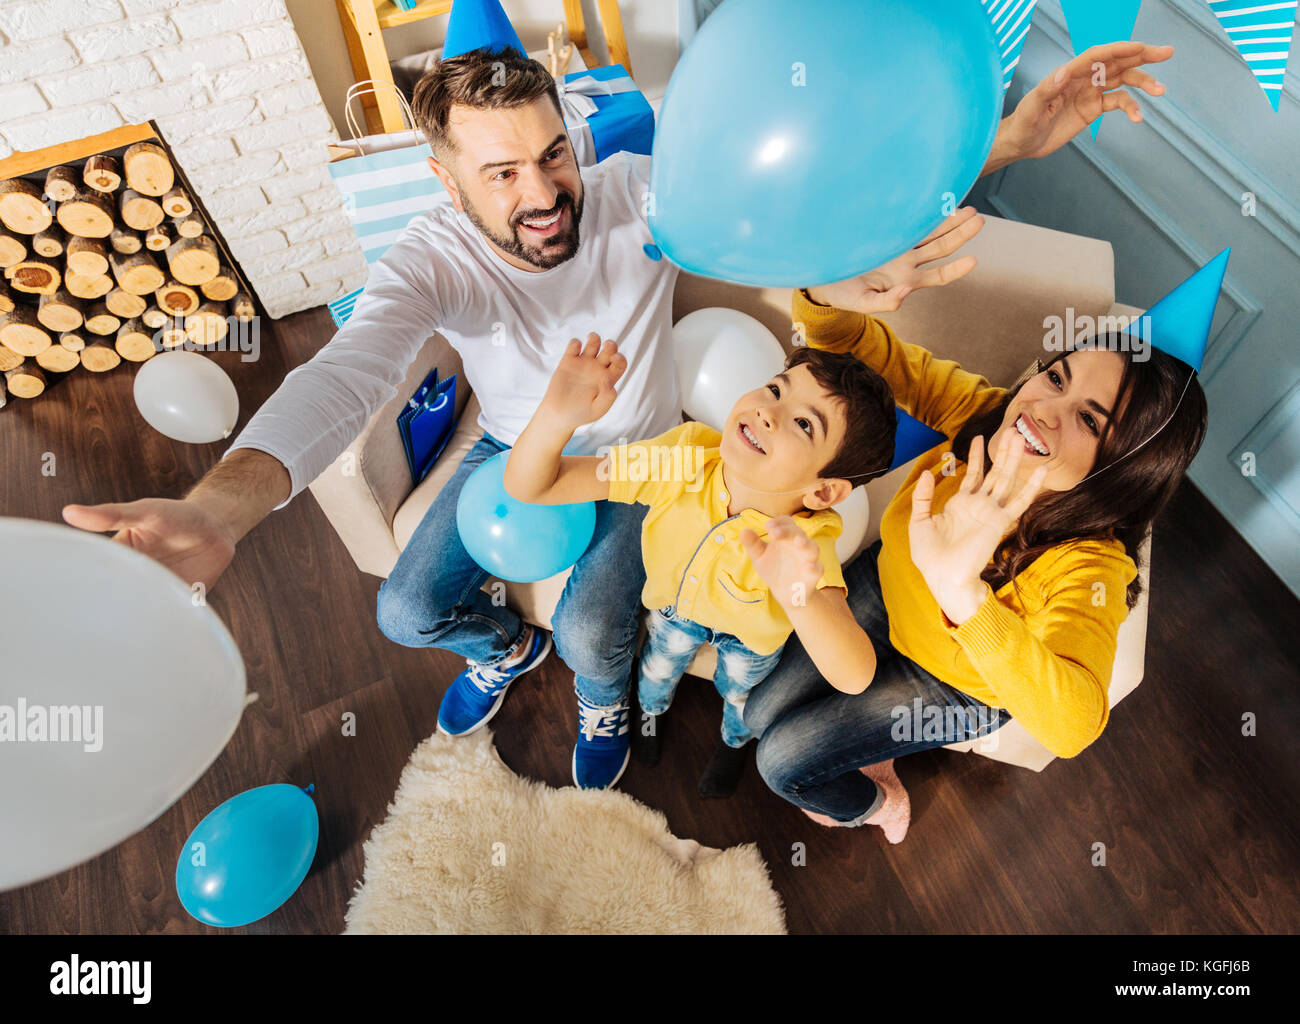 Joyful family throwing balloons during birthday party - Stock Image